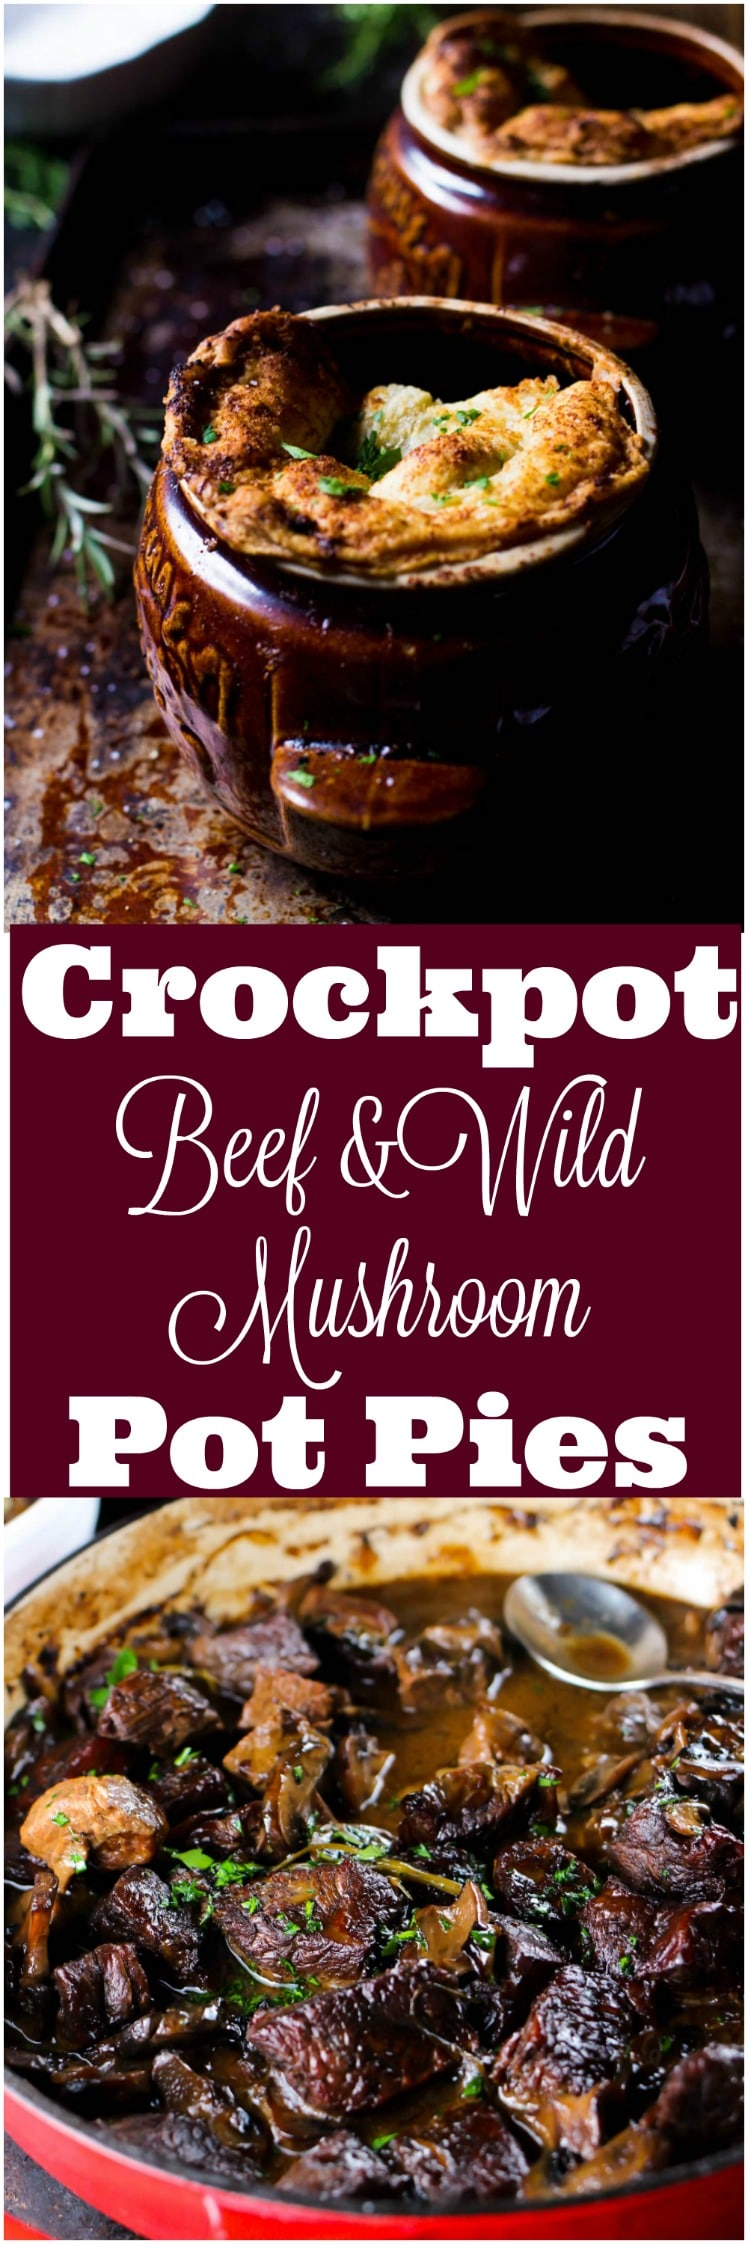 When a wild mushroom stew meets puff pastry the most incredible and scrumptious crockpot beef pot pie is born. The stew is incredibly flavorful and ridiculously simple. Cooking it in the crockpot makes this a perfect make ahead, minimal effort entree that will blow everyone at your dinner table away.